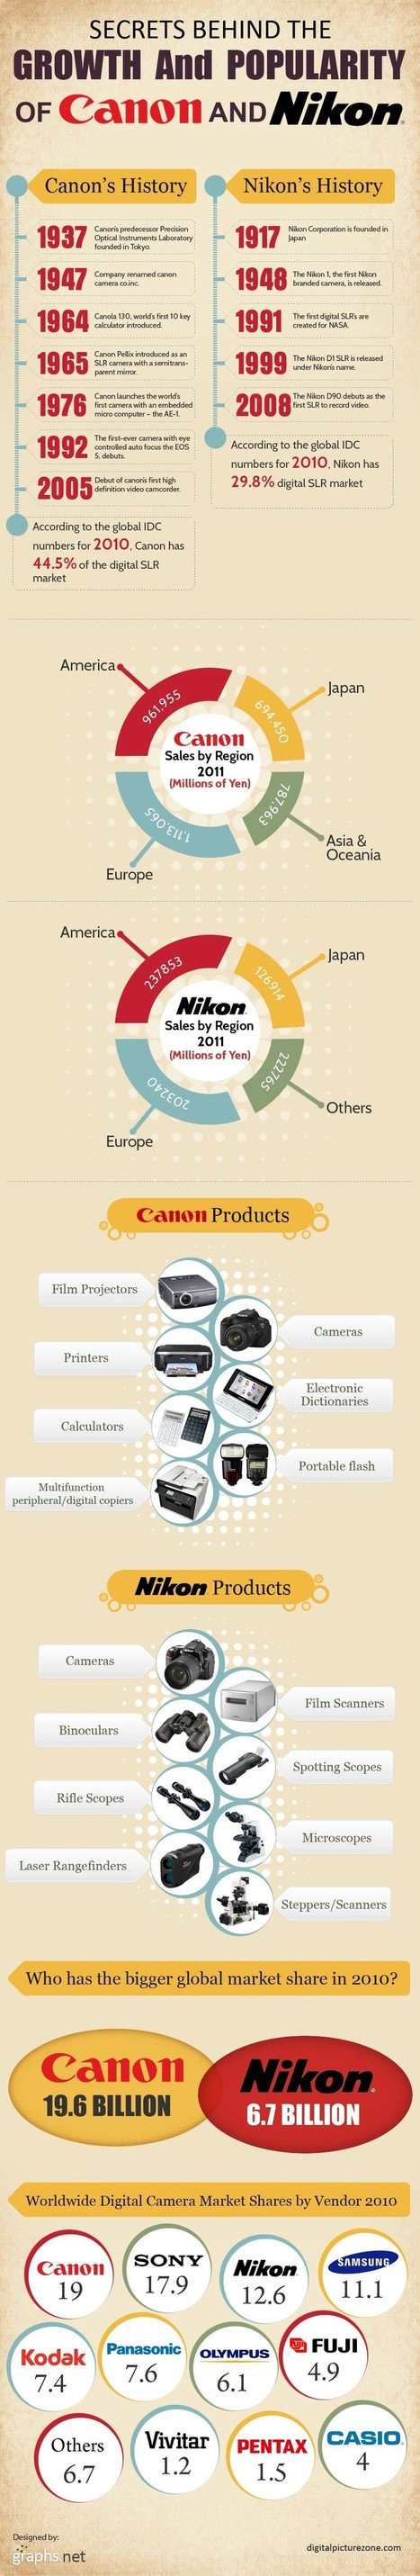 Marketing: How Canon & Nikon makes Millions of Profits | Infographic | CrowdSourcing InfoGraphics | Scoop.it